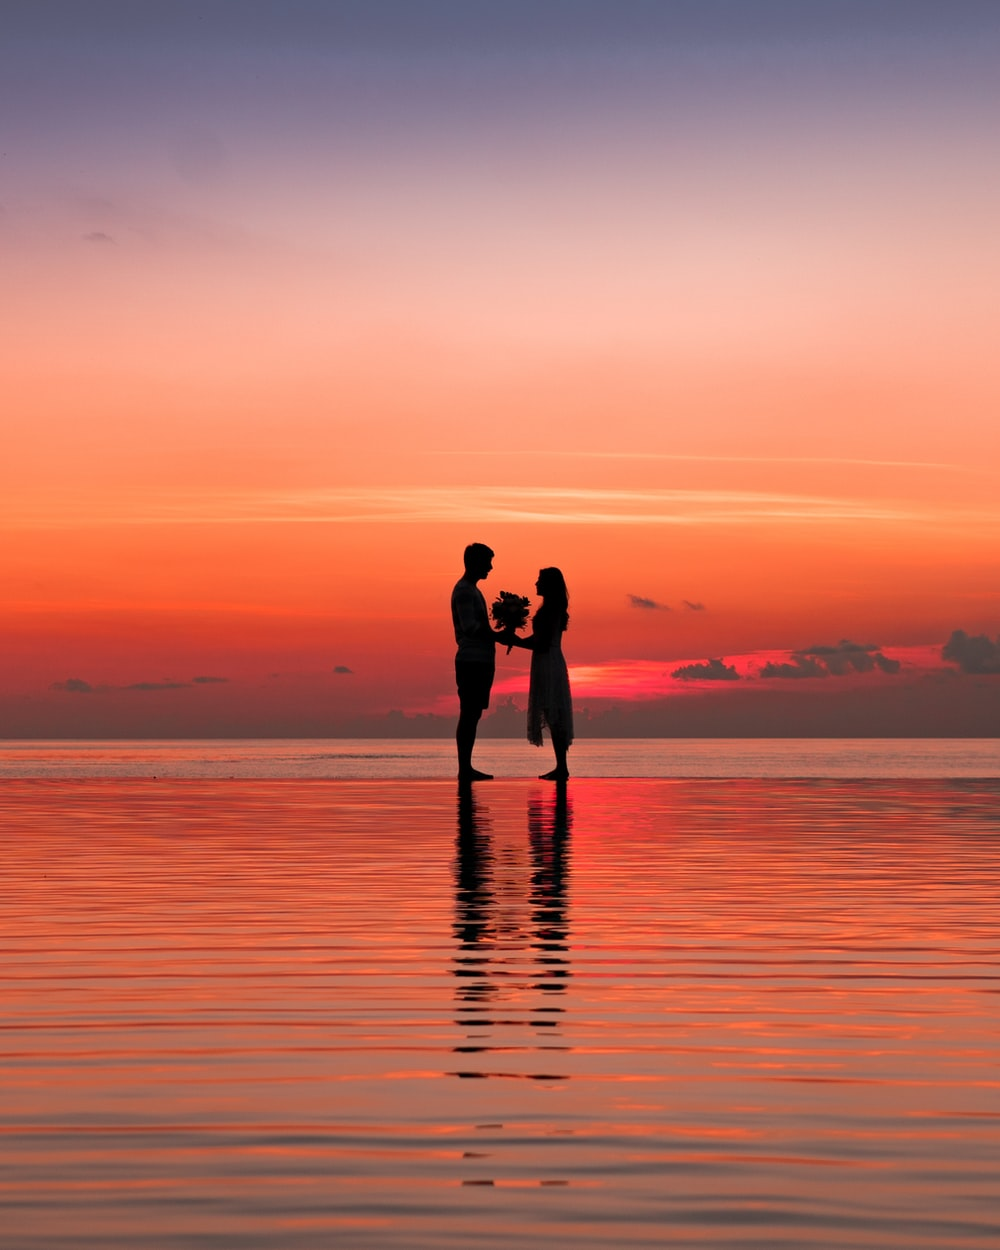 man and woman silhouette against golden hour